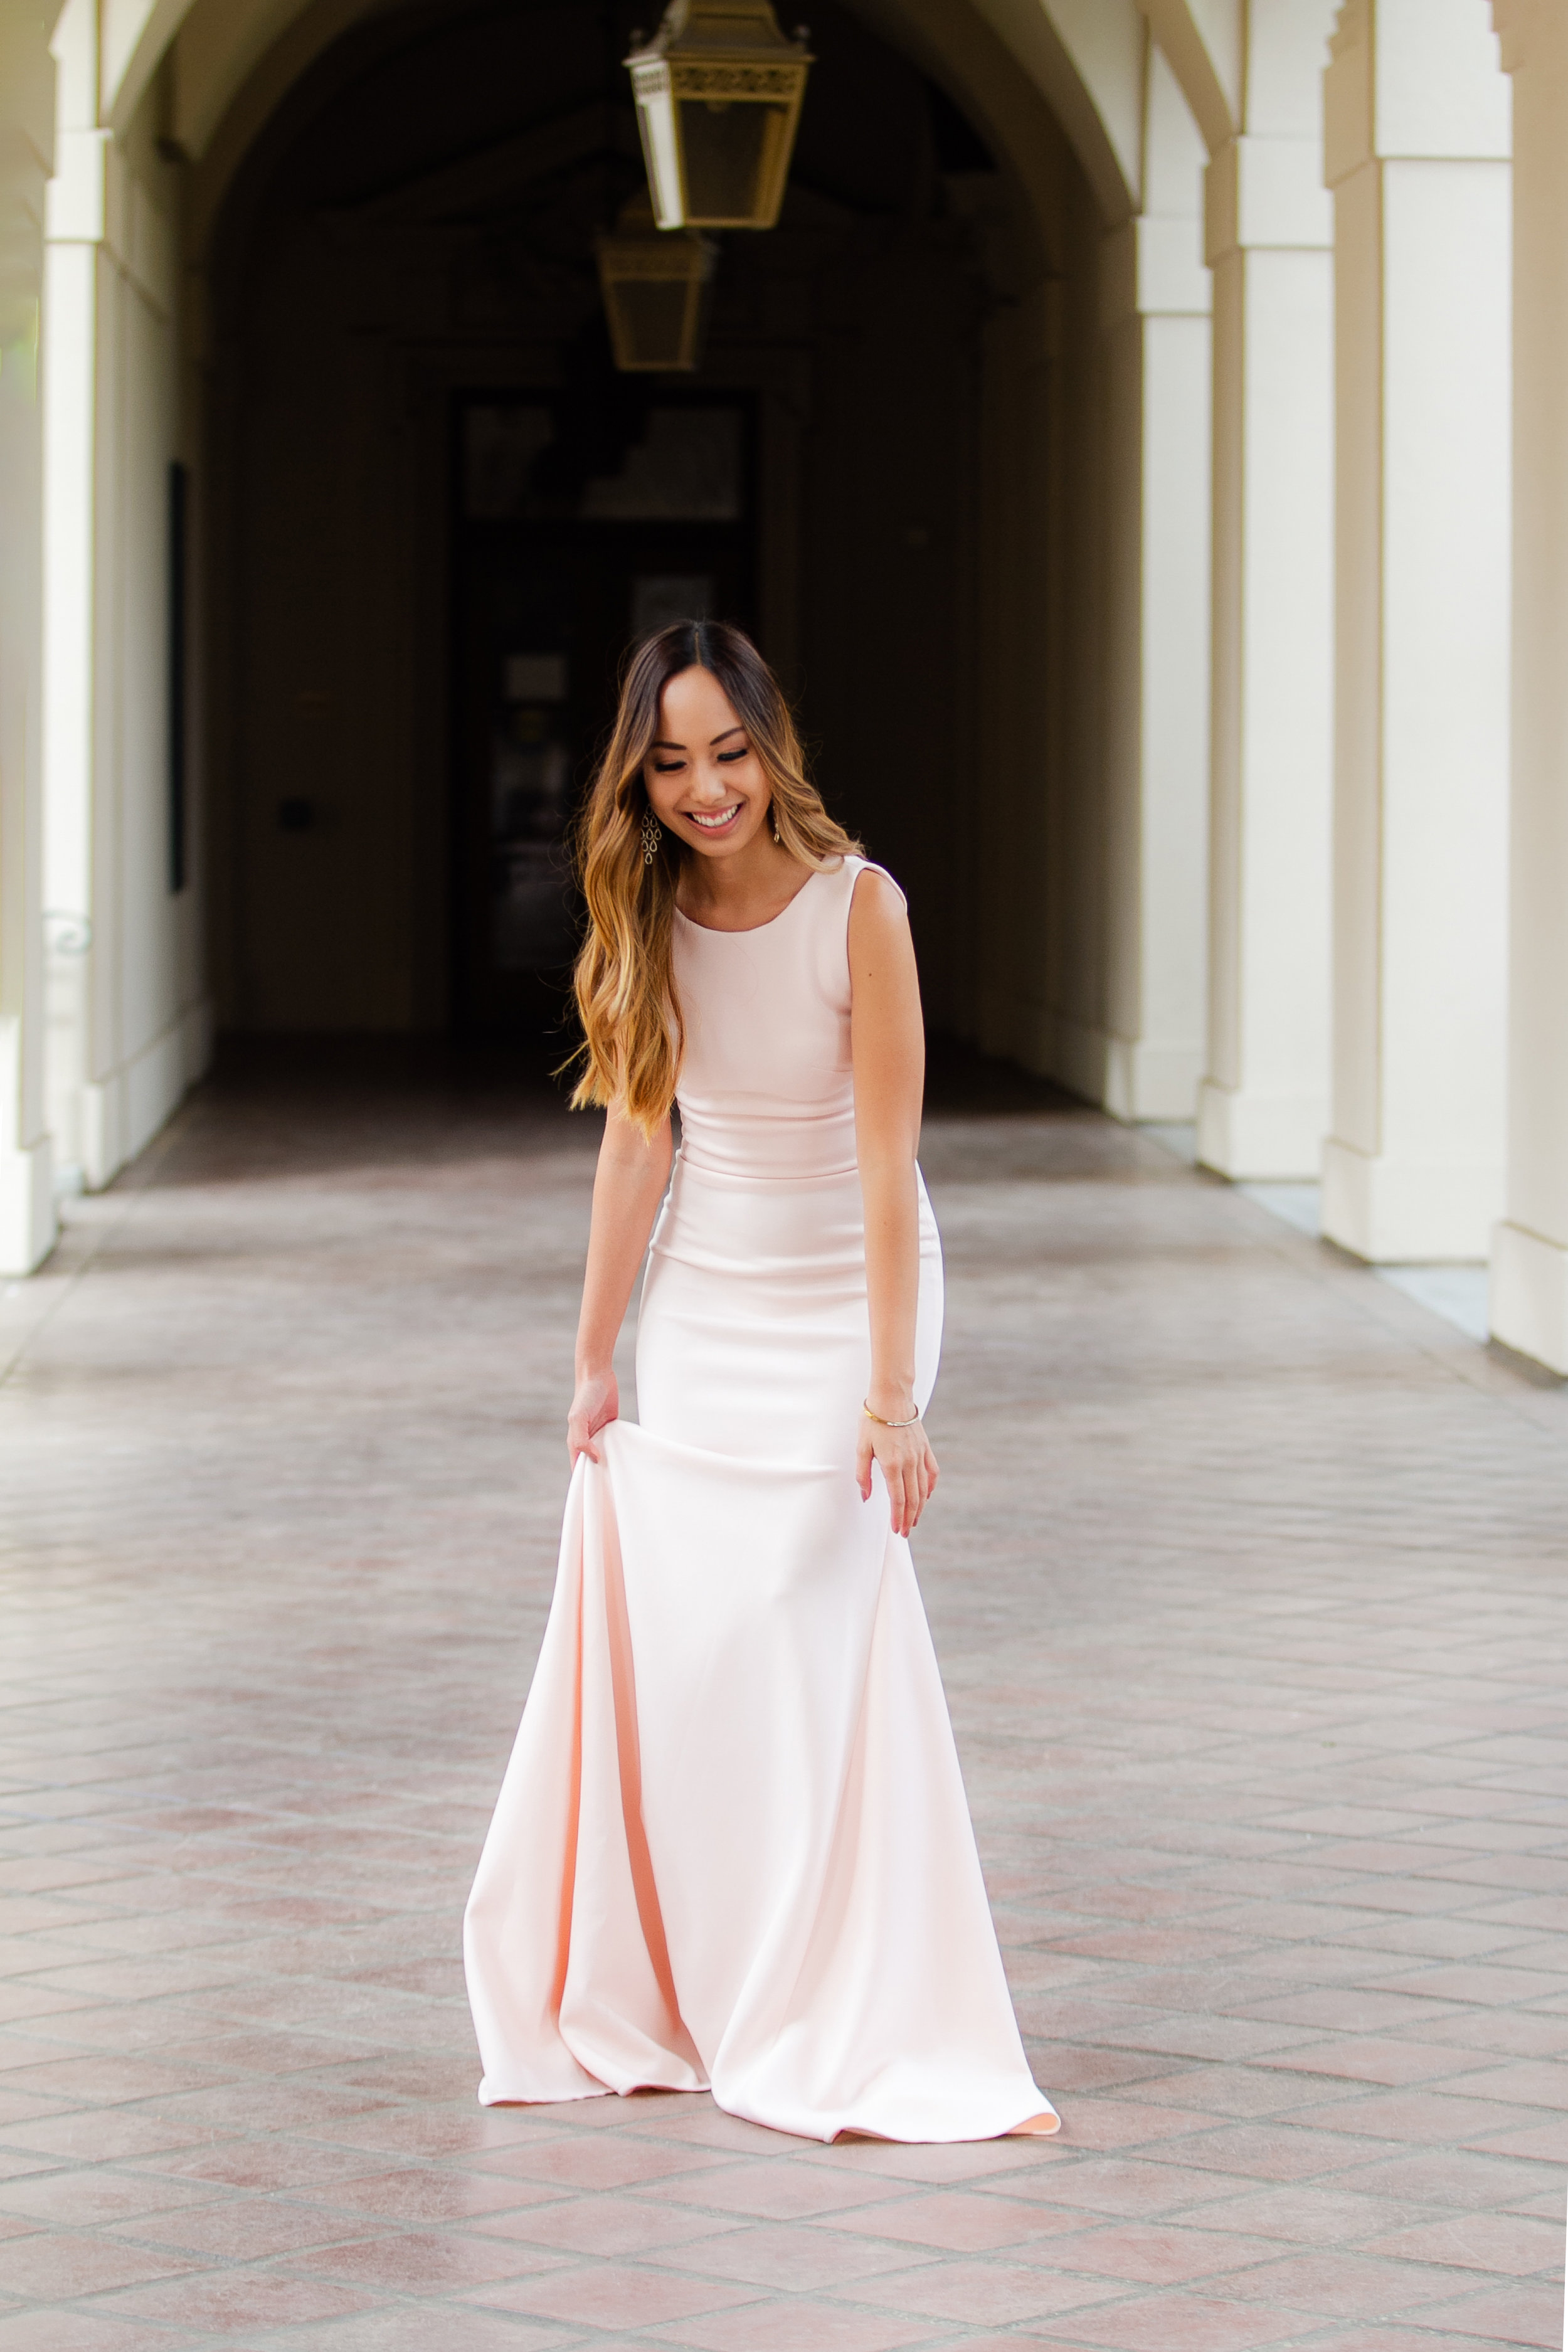 Elissa: I picked out the  Cressida dress  in a delicate blush, it is simple and very flattering.The cut really compliments your body shape, especially the mermaid tail.